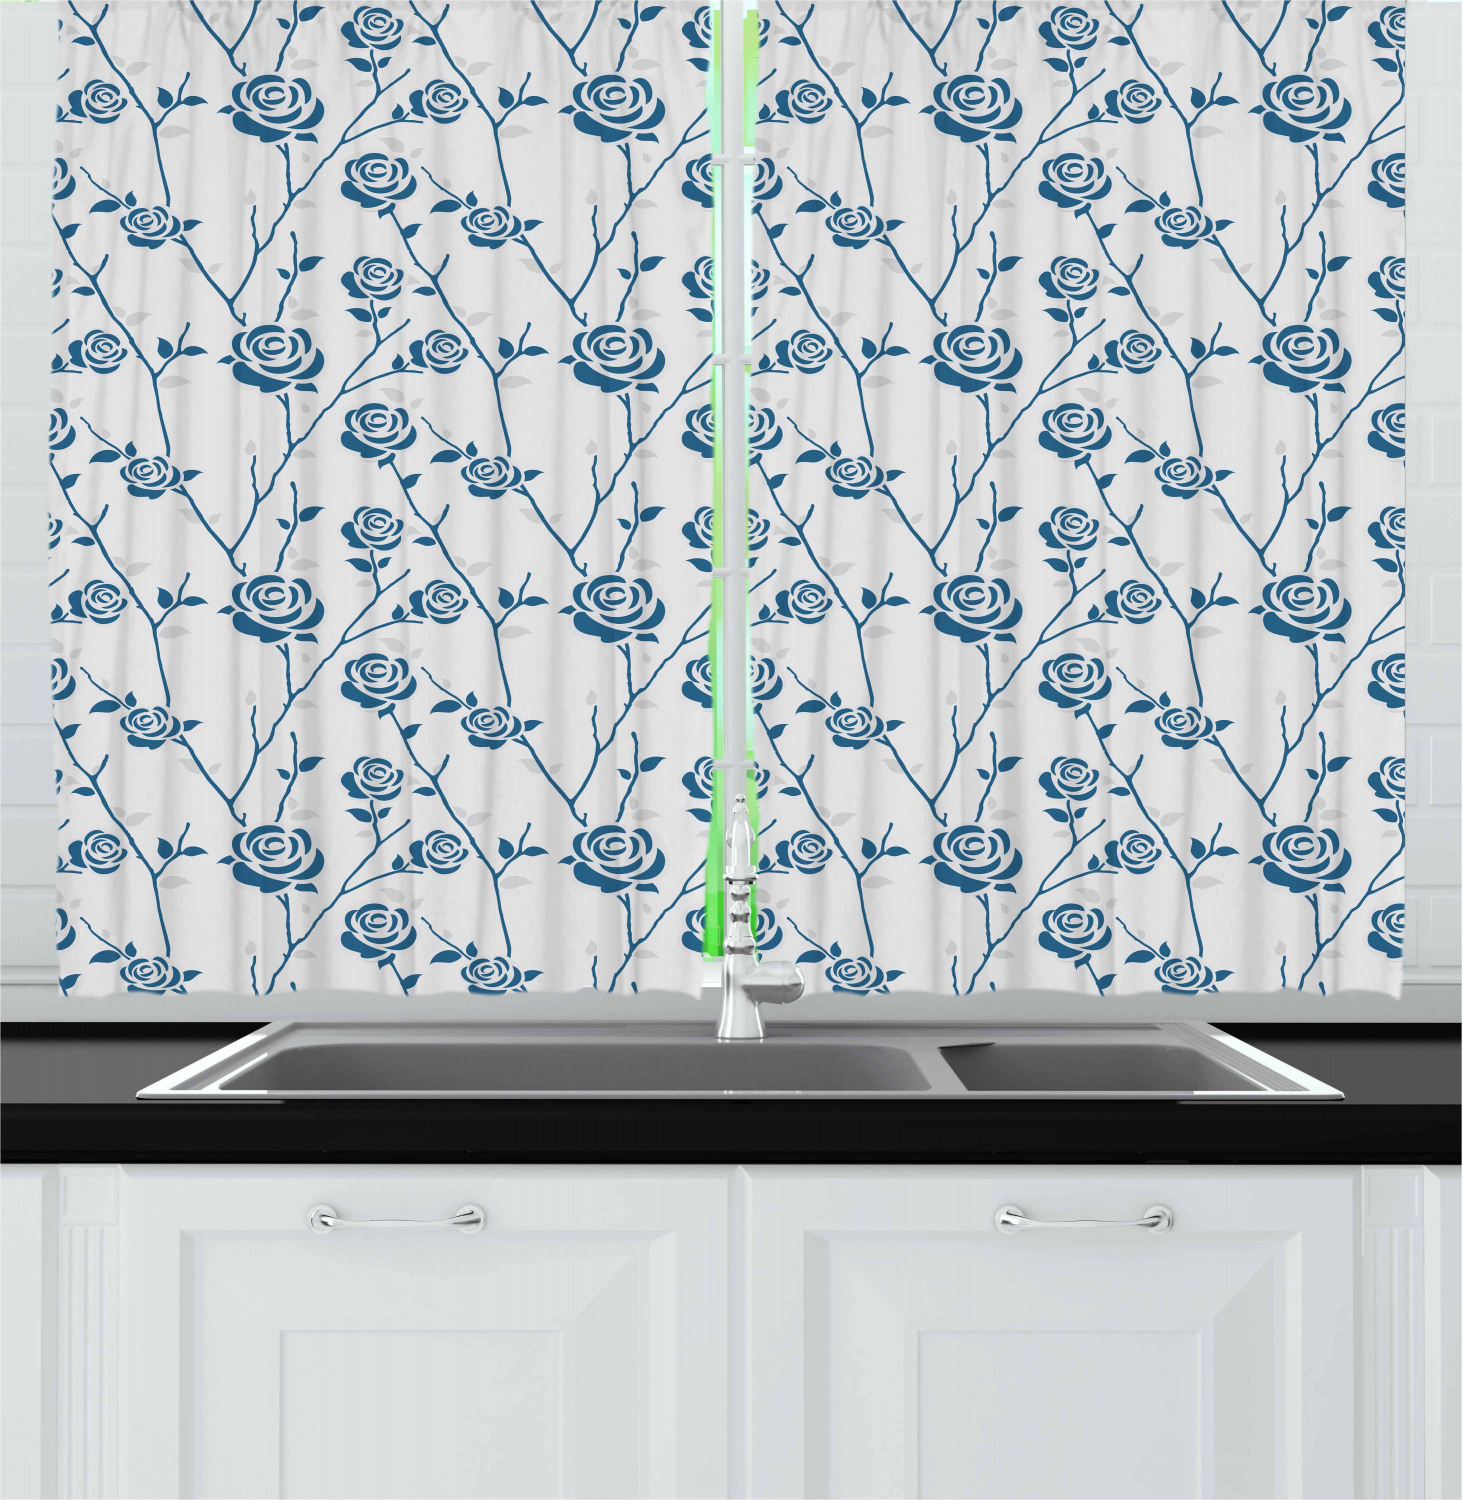 Blue Floral Kitchen Curtains 2 Panel Set Window Drapes 55 X 39 Ambesonne Garden Curtains Window Treatments Hardware